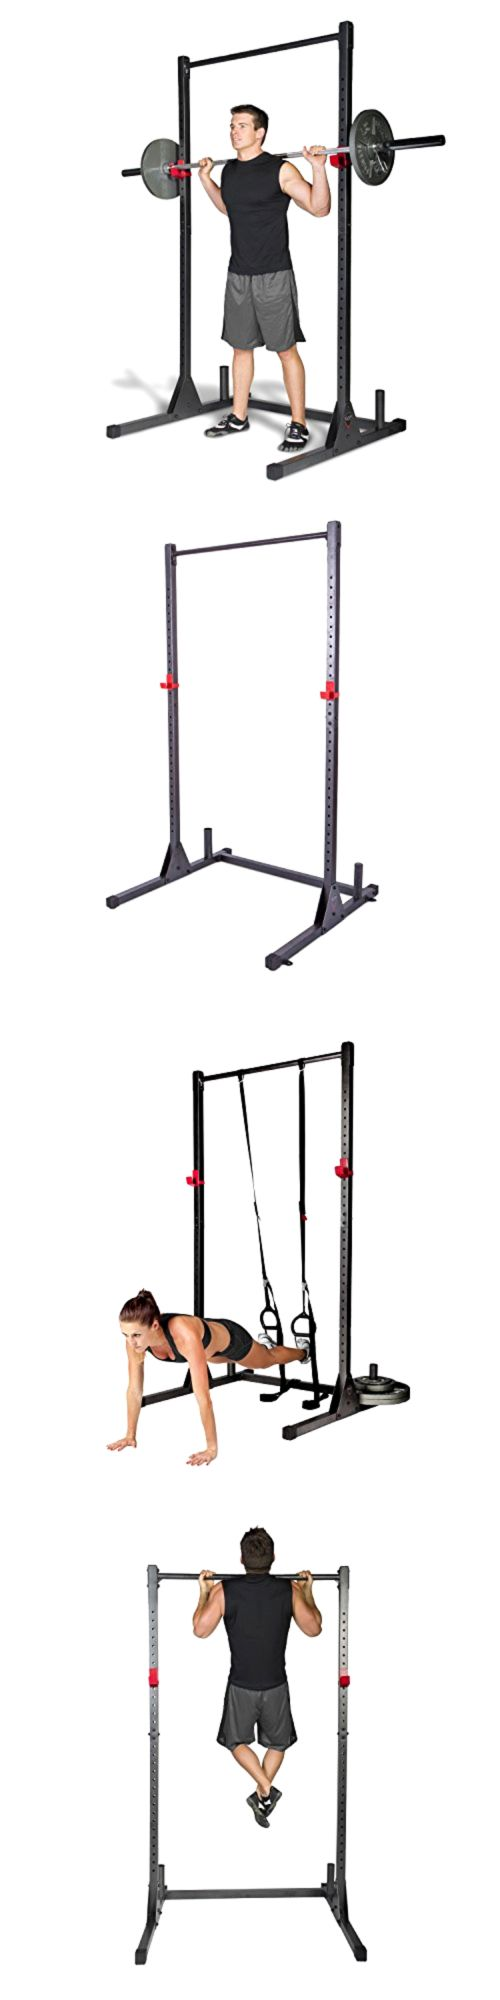 Power Racks and Smith Machines 179815: Home Gym Pull Up Bar Power Rack Exercise Stand Body Building Workout Fitness New -> BUY IT NOW ONLY: $74.05 on eBay!